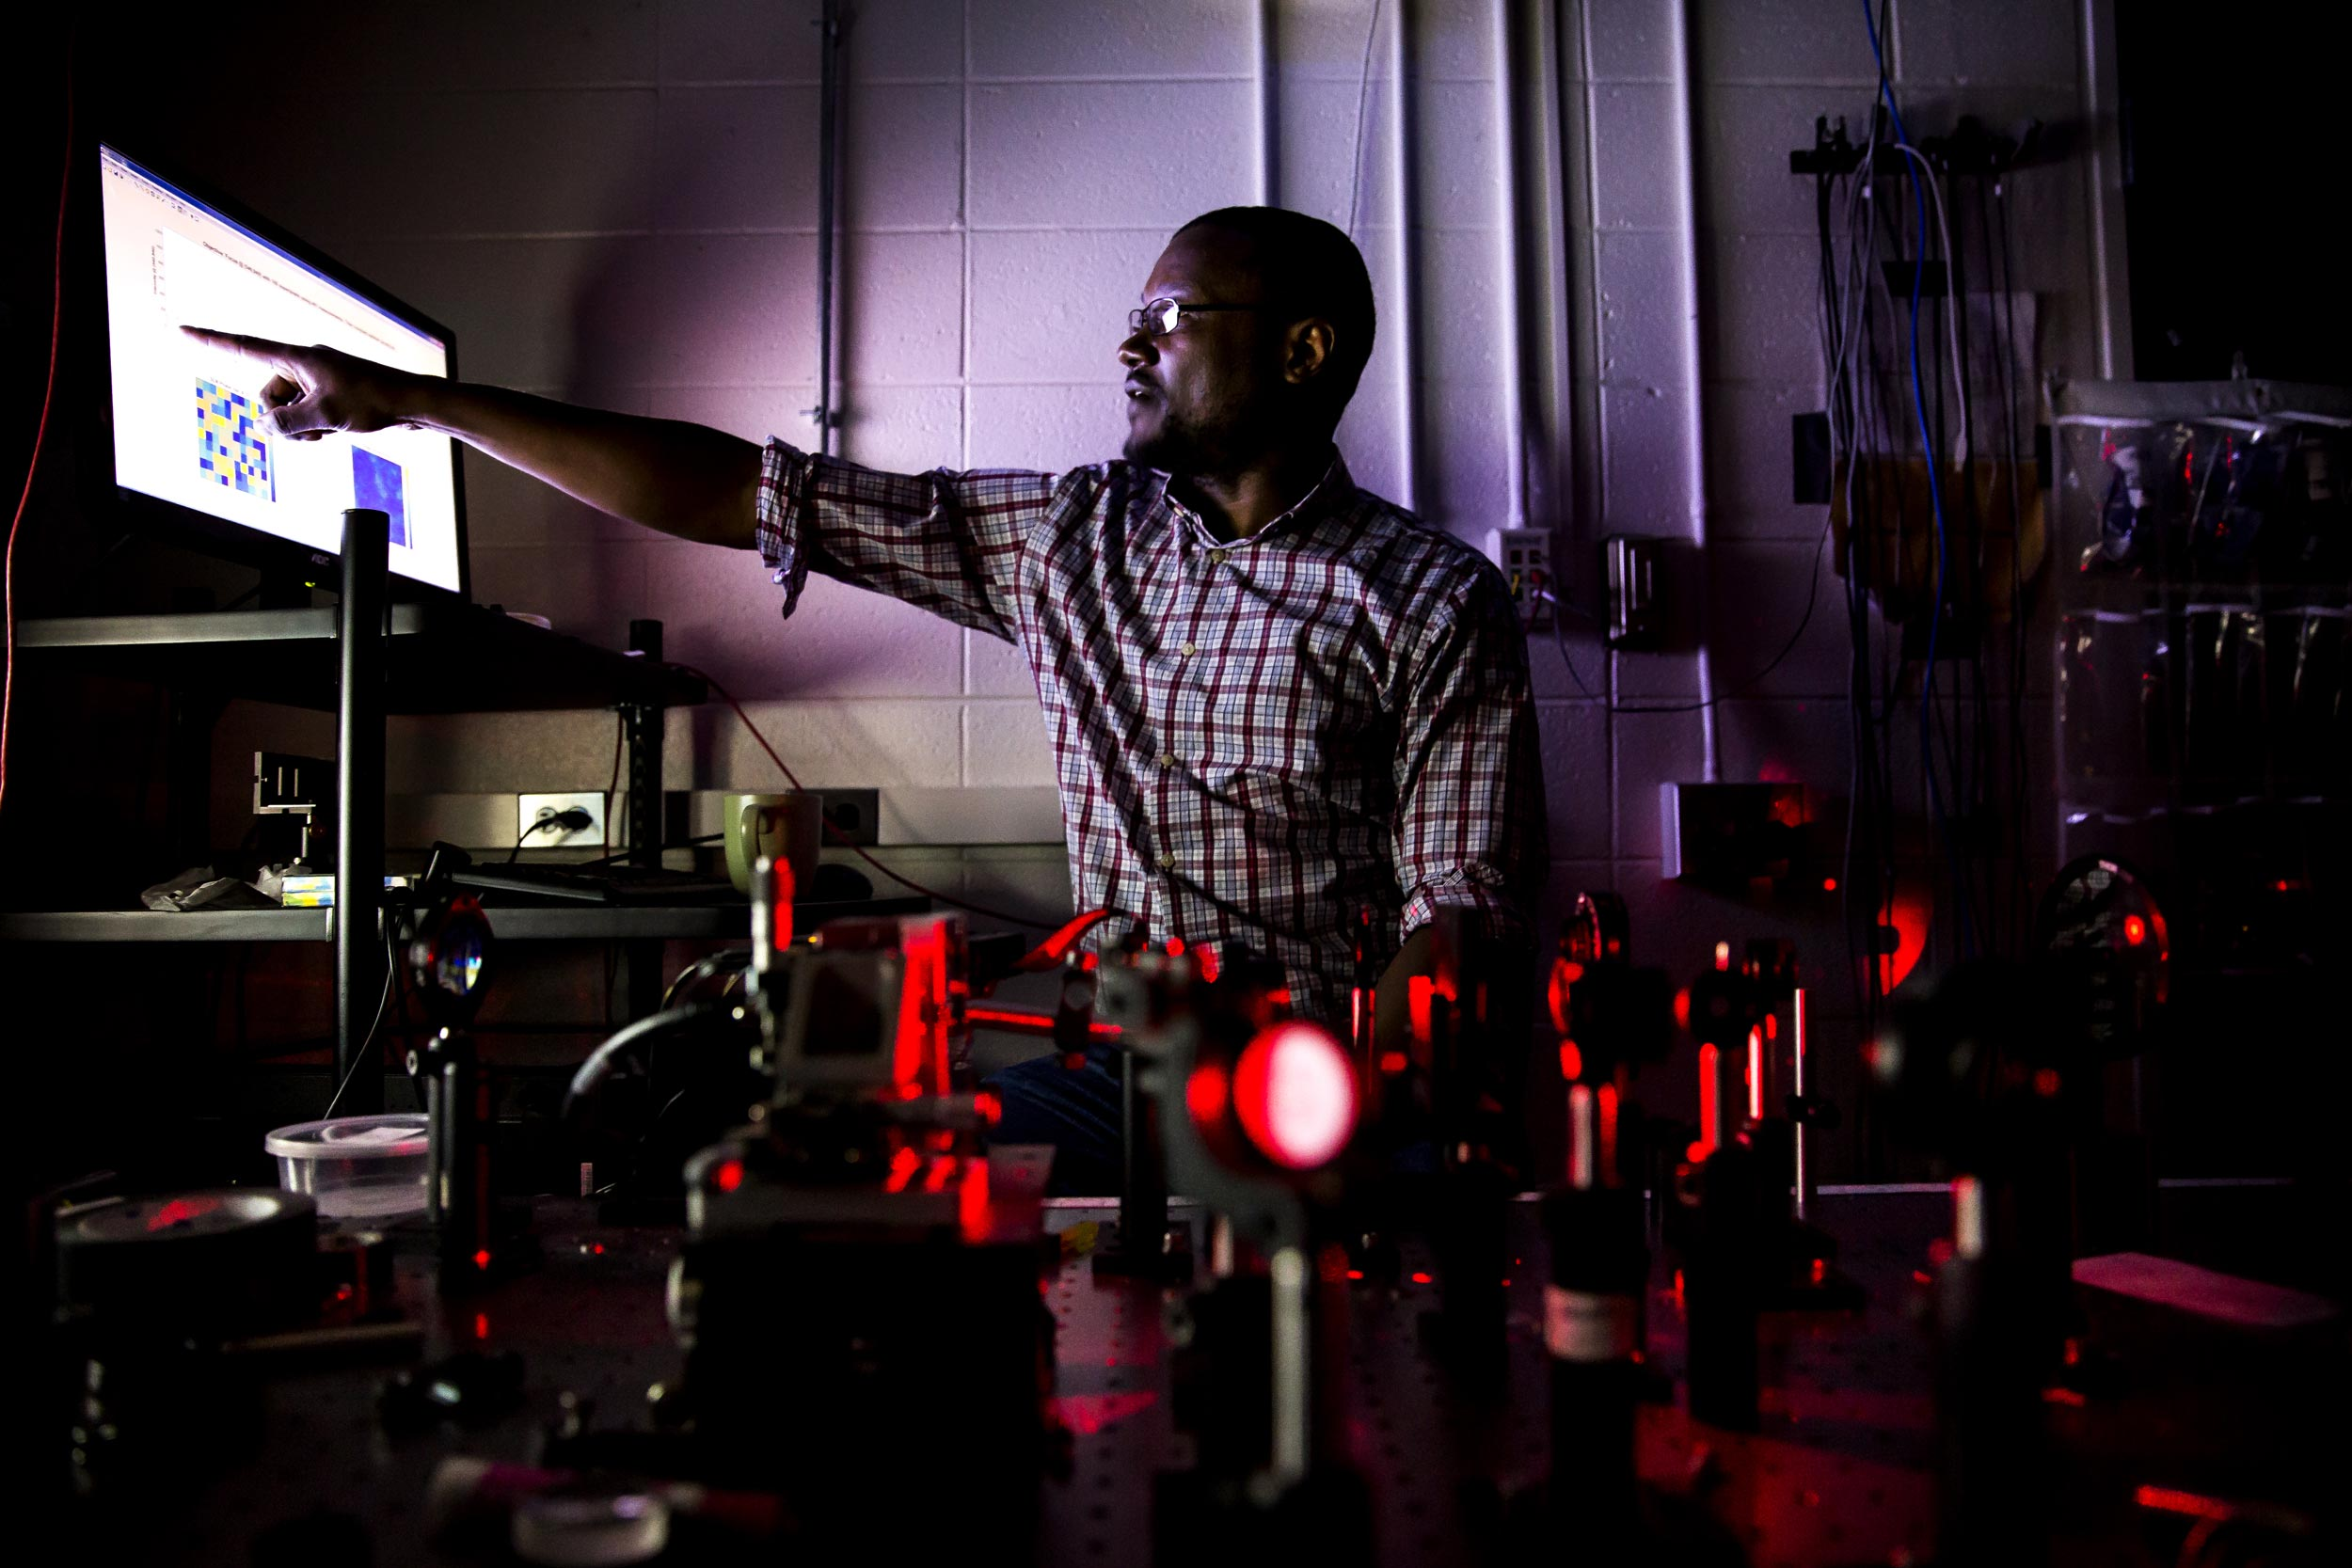 Moussa N'Gom points to a display showing how the yogurt scatters light. He hopes that the speedy algorithm developed by his team is another step toward medical imaging that can see through skin with visible light. Image credit: Joseph Xu, Michigan Engineering